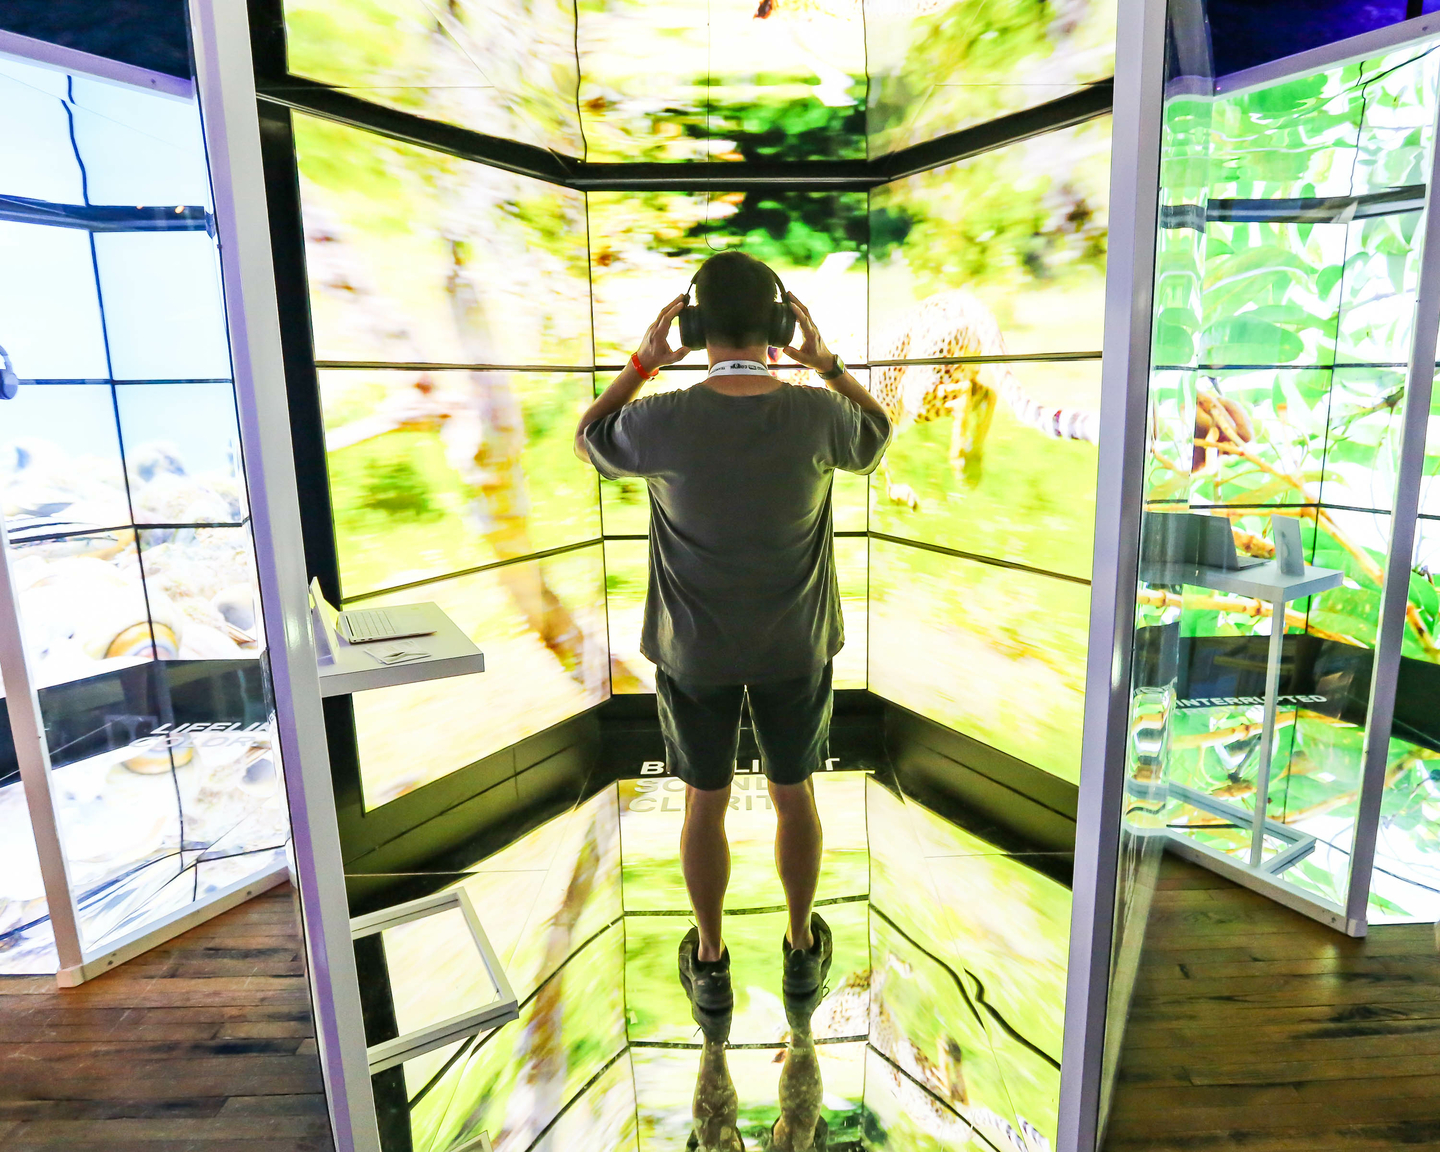 THE EXPERIENCE by Dell Technologies brings you innovative tech, the latest in gaming and revolutionary ways people are transforming the ways we create, work and play. Photo by Diego Donamaria